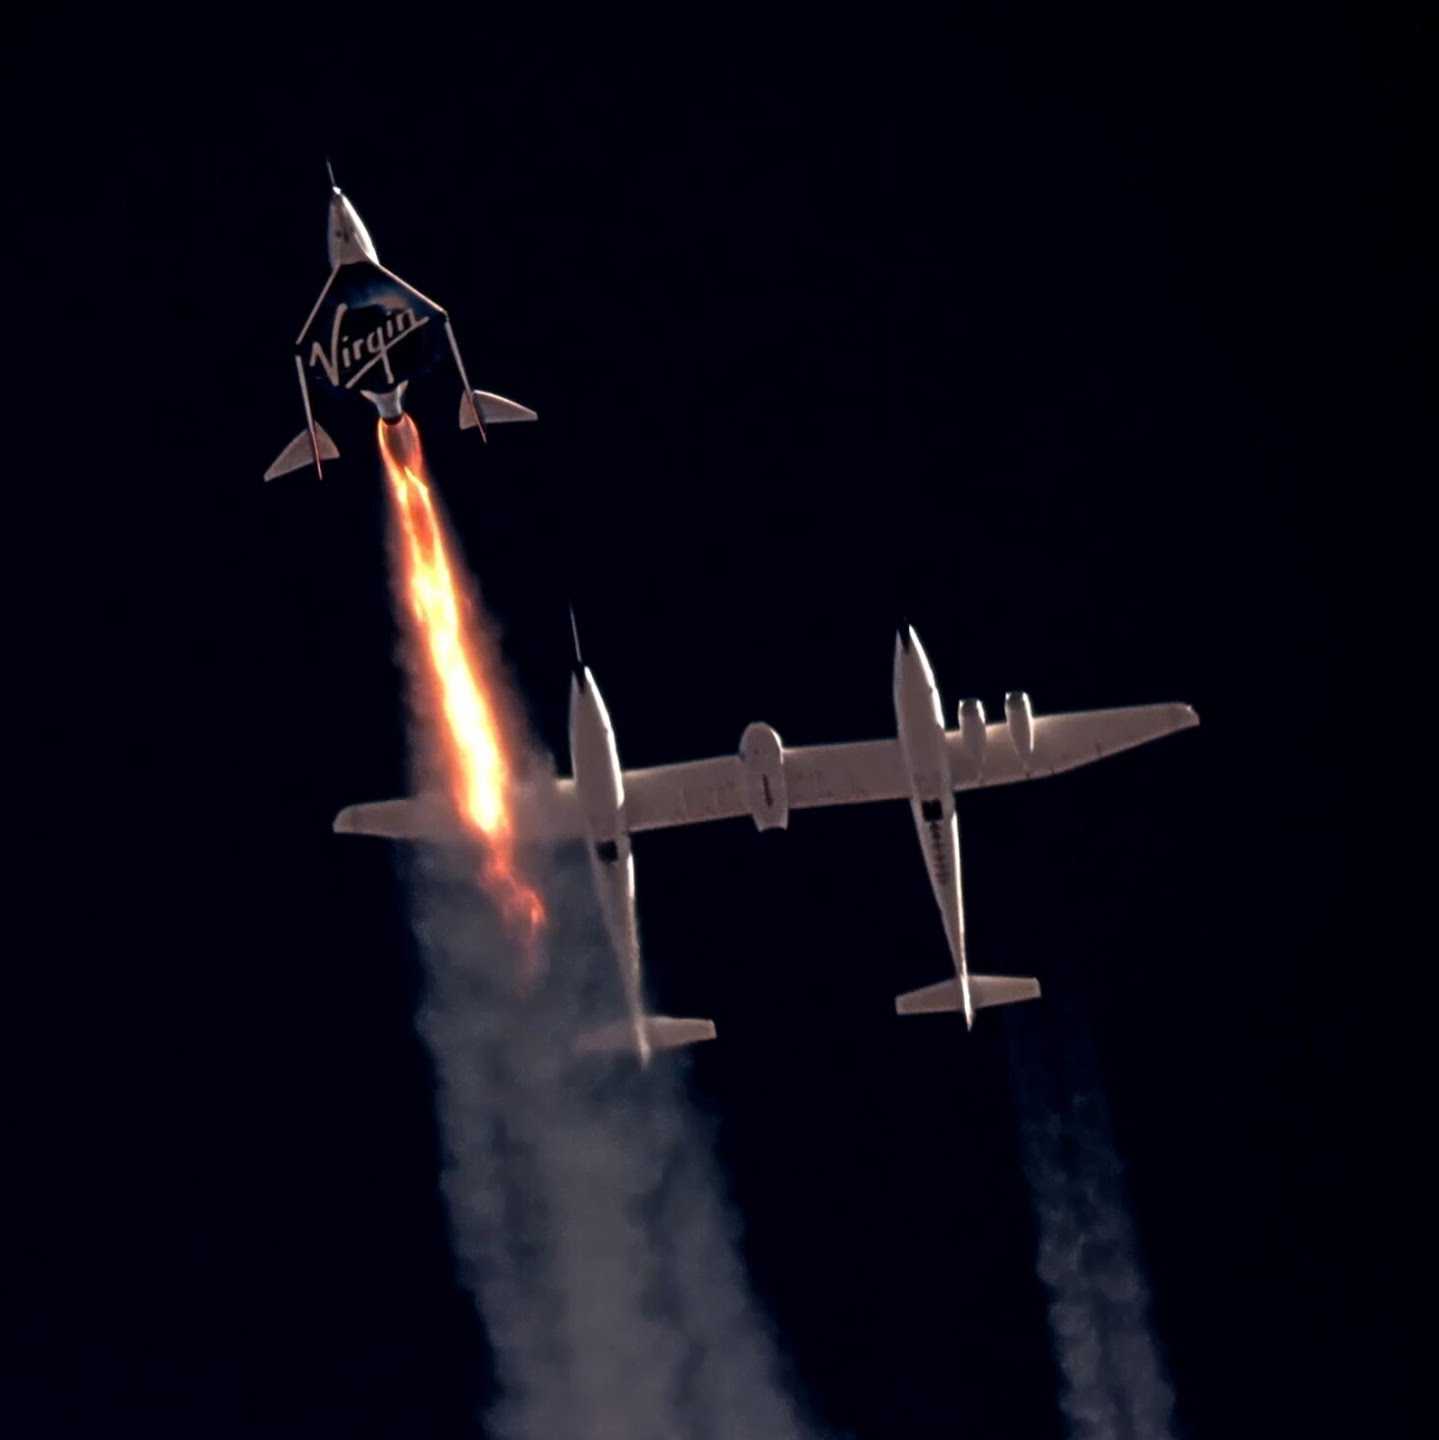 VSS Unity, the Virgin Galactic spacecraft carrying Richard Branson and crew, as it began its ascent to the edge of space near Truth or Consequences, N.M., on July 11.